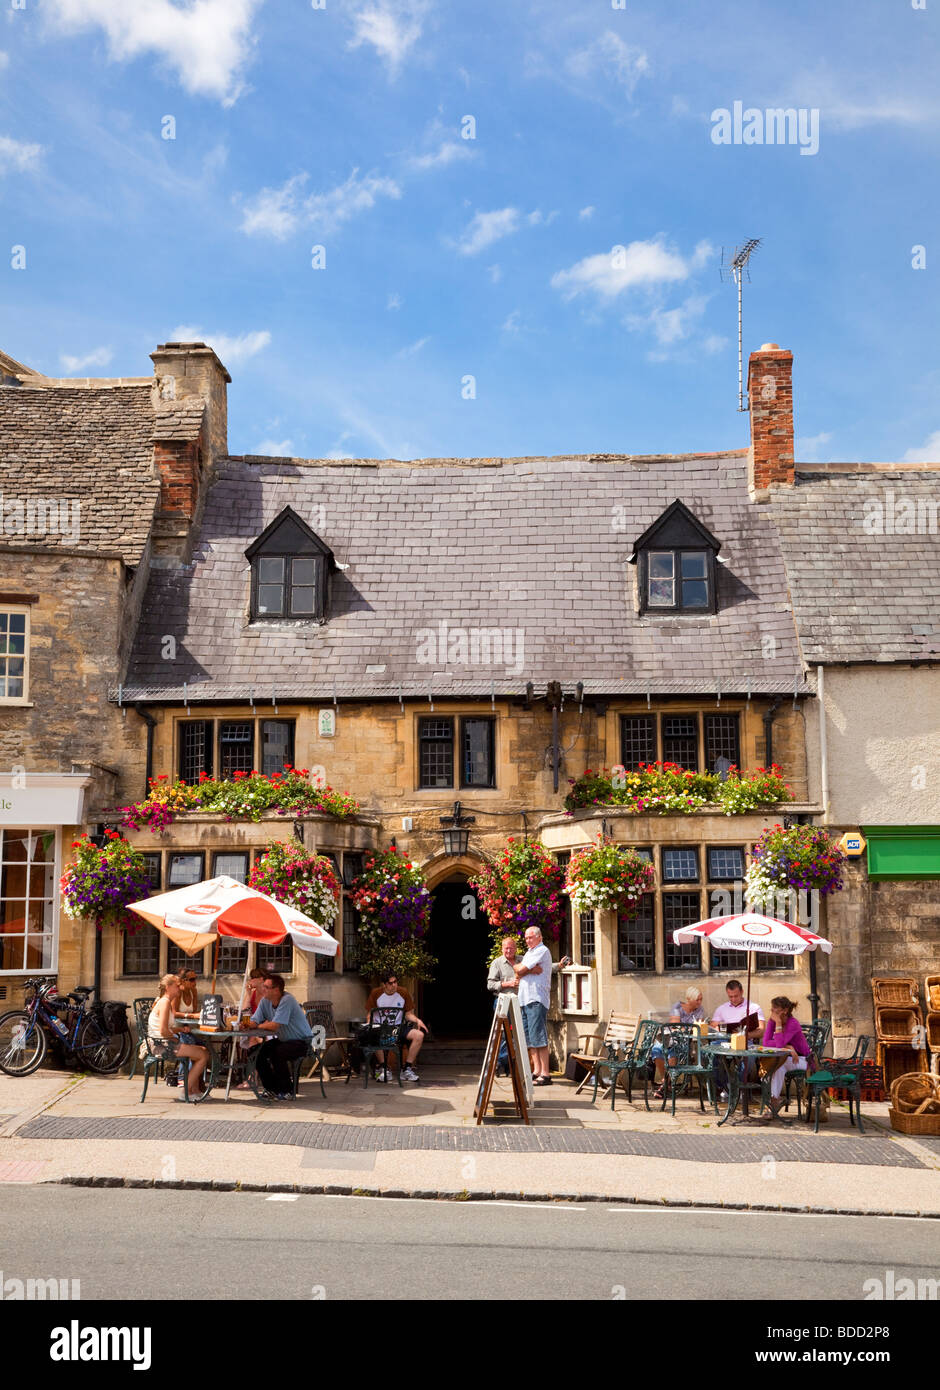 Traditional old English Pub, Burford, Cotswolds, Oxfordshire, England, UK - Stock Image